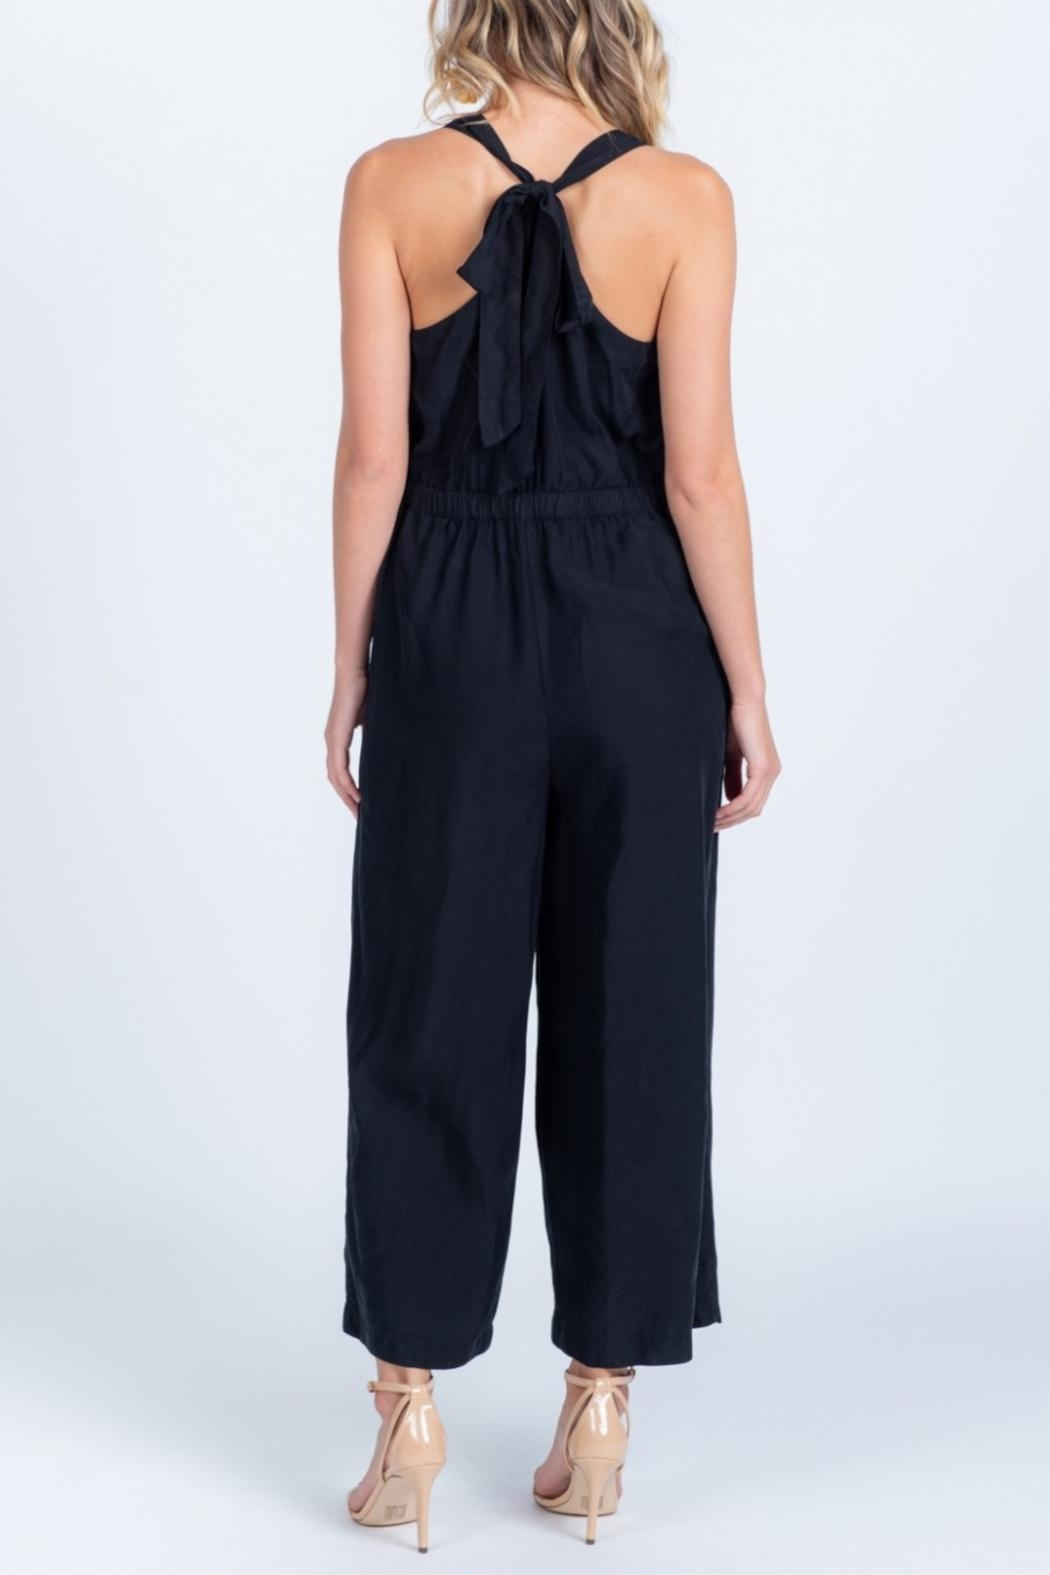 Everly Tie Back Jumpsuit - Back Cropped Image